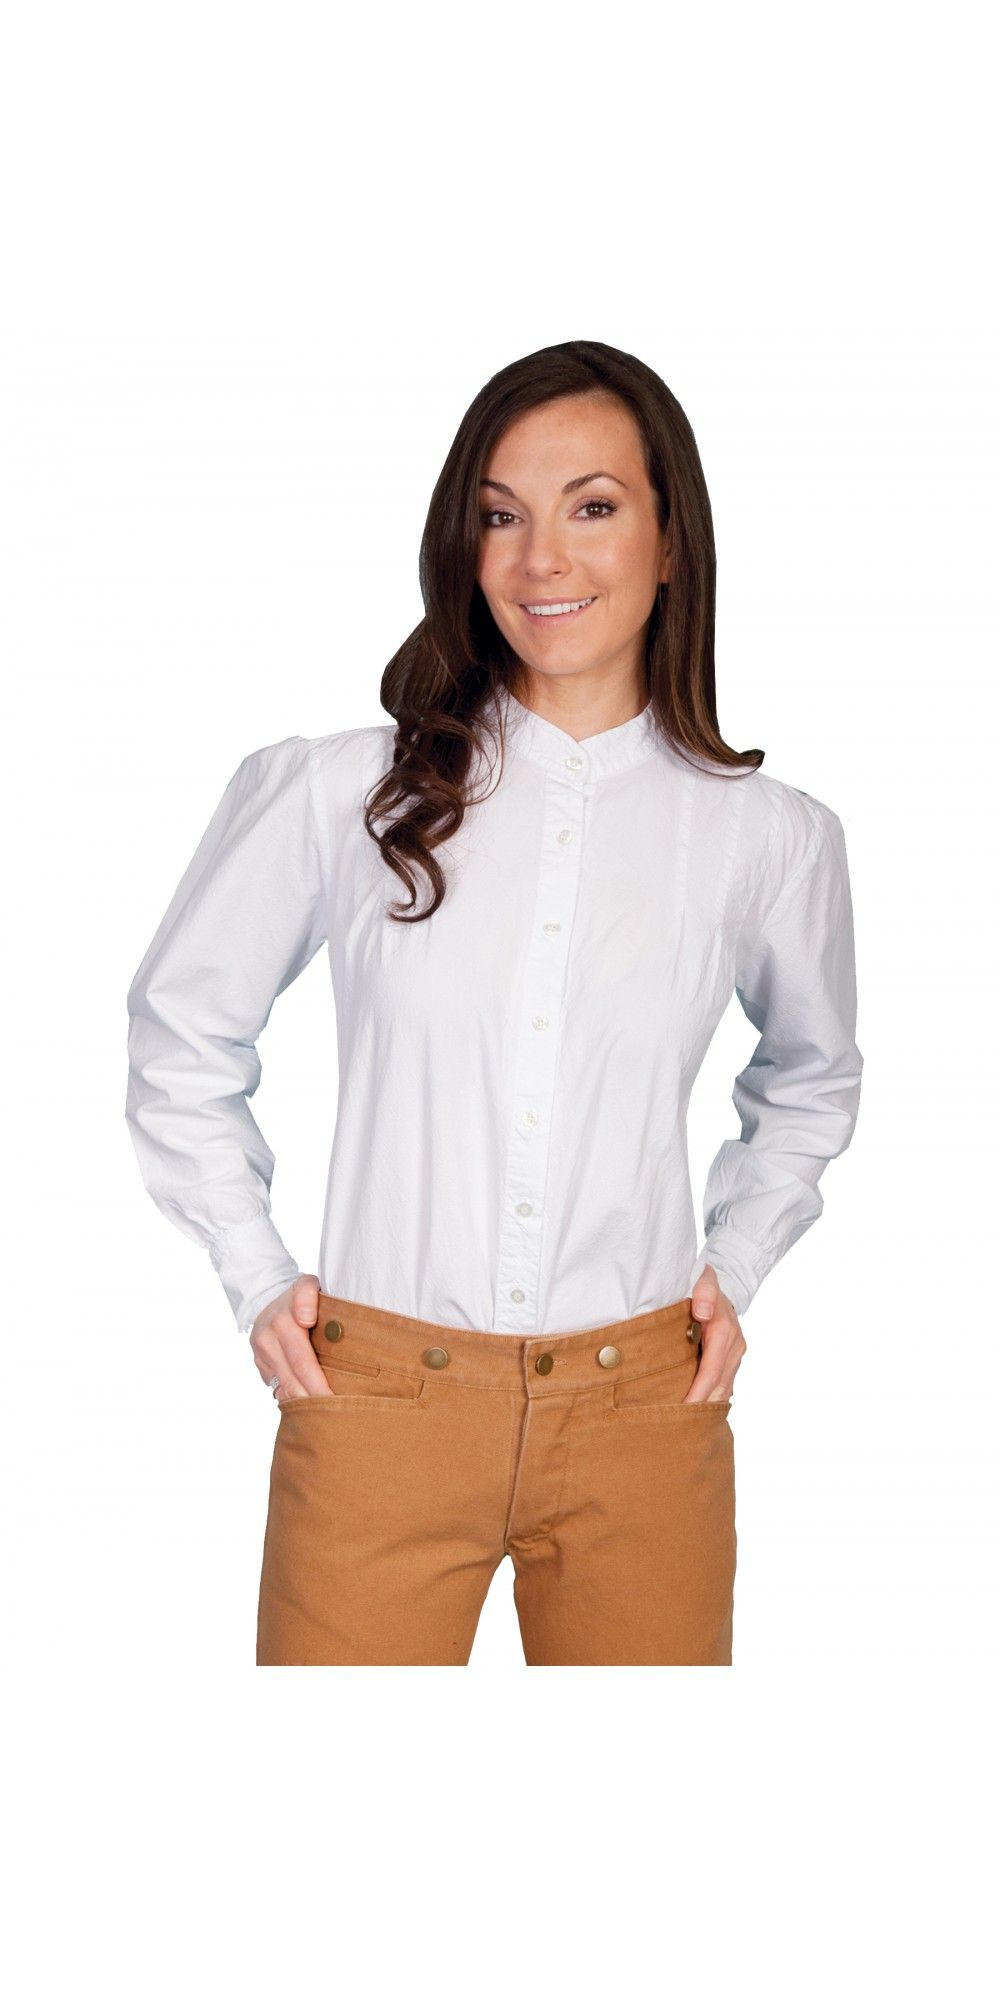 Rangewear western style blouse in white by scully leather features